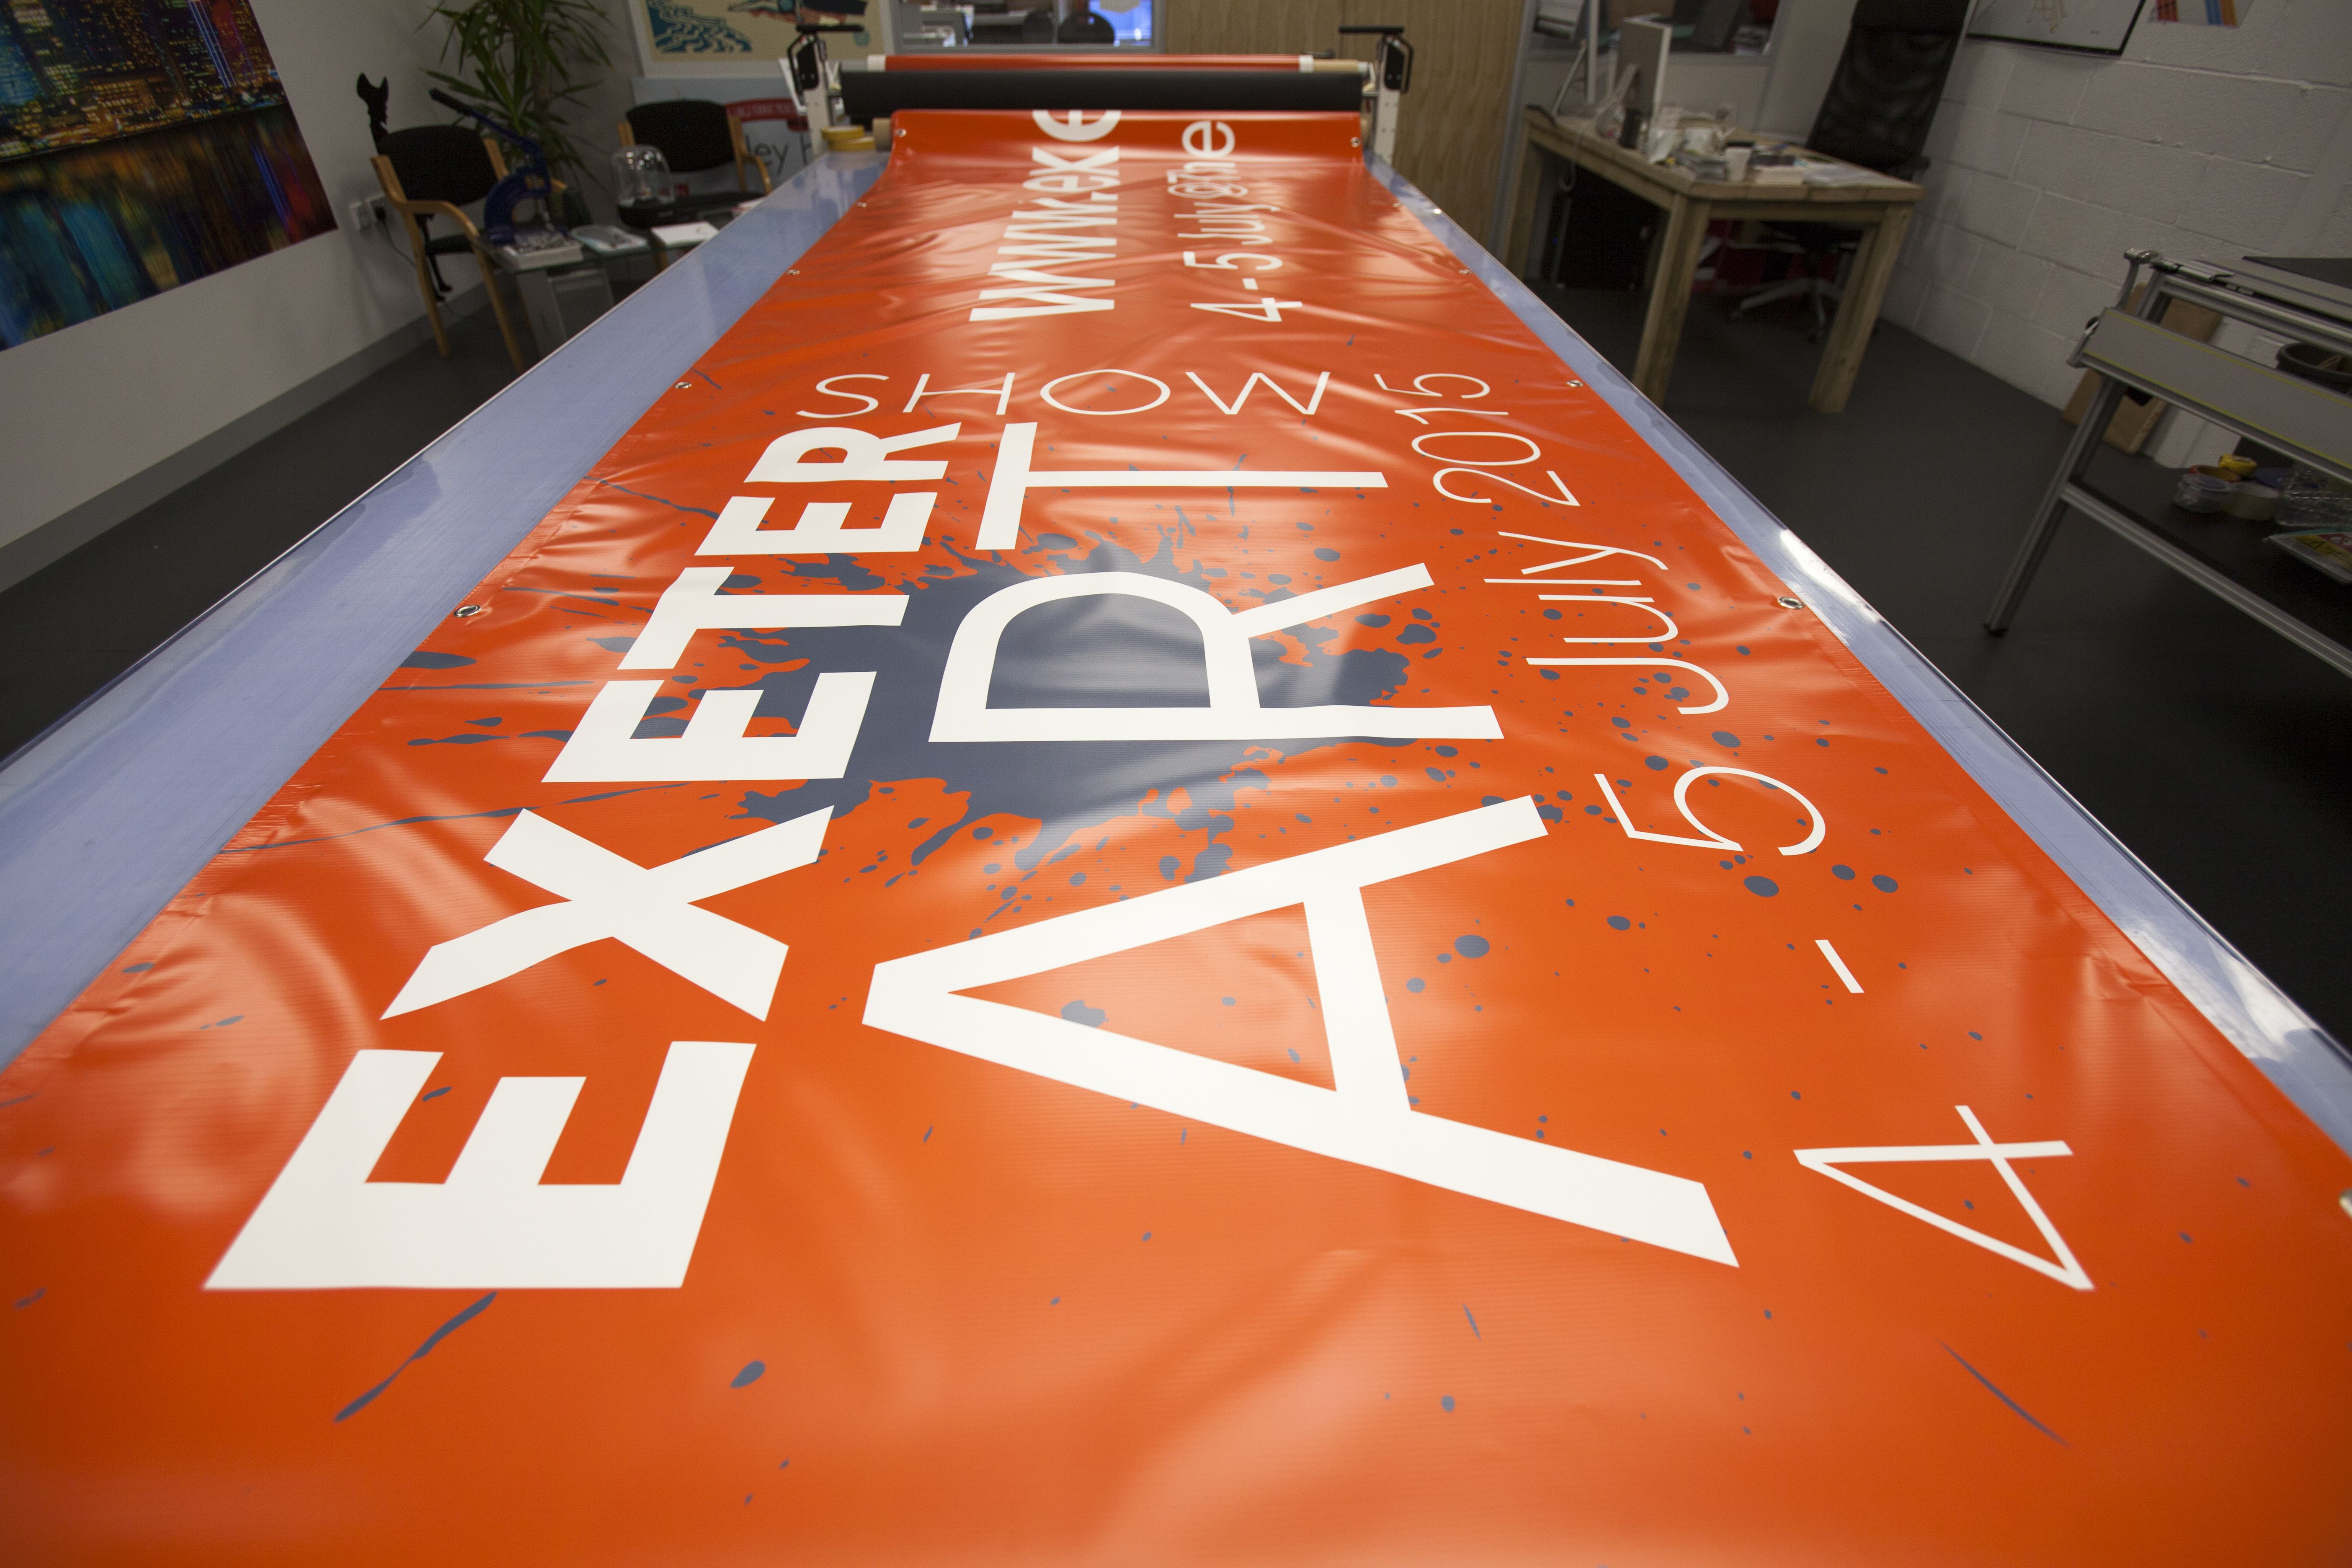 Maynardschool Banners Printing Www Asghleyhouse Co Uk Large Format Printing Prints Co Uk